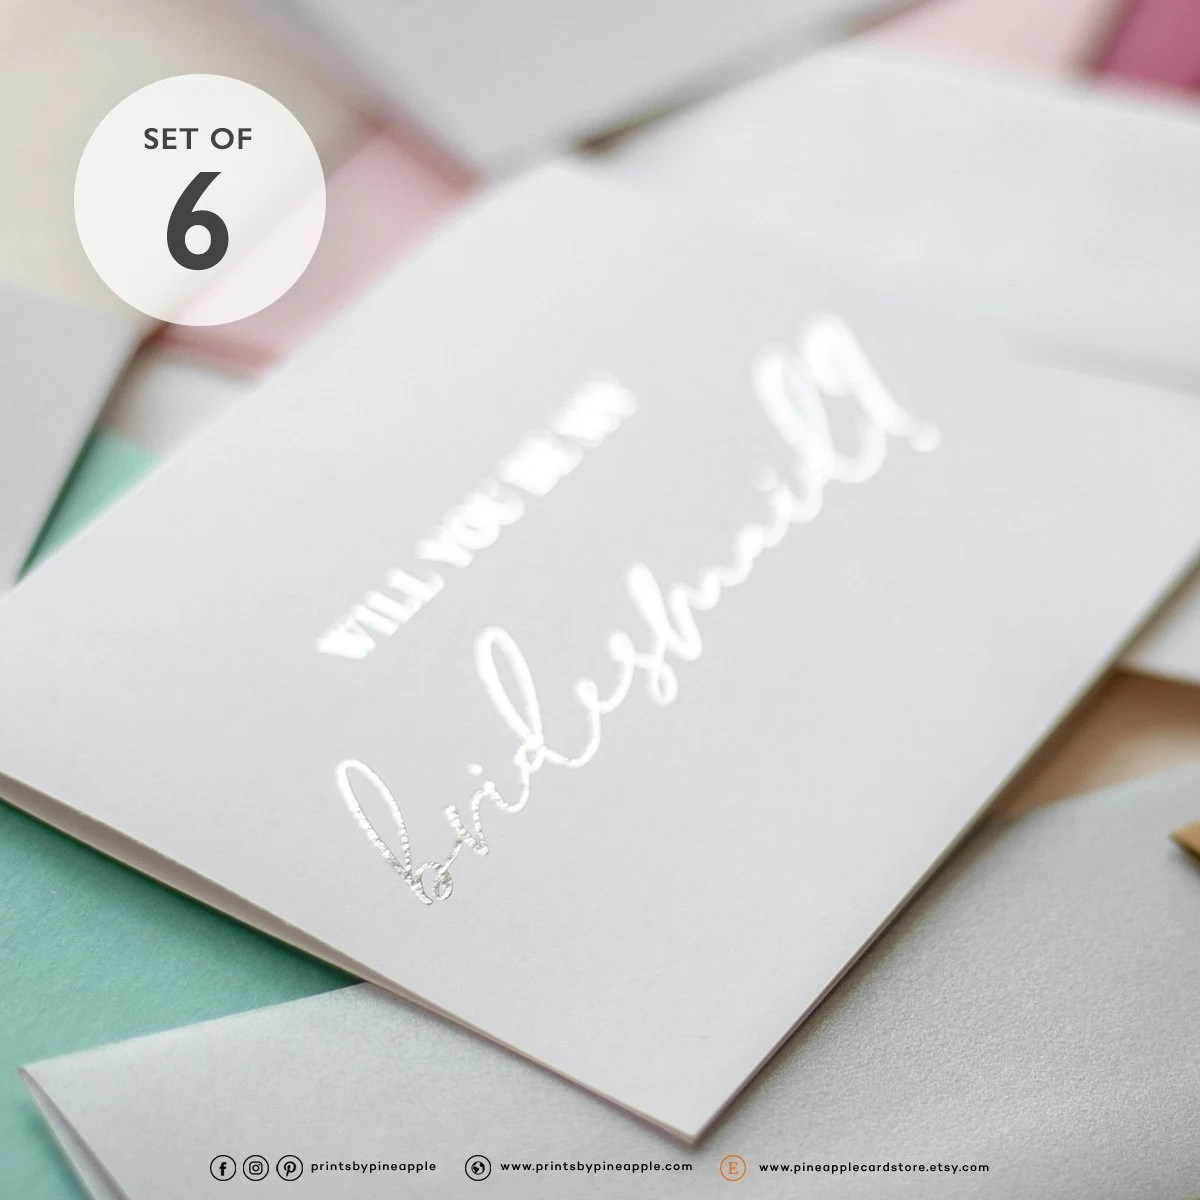 Will You Be My Bridesmaid – Bridesmaid Proposal – Ask Bridesmaid – Be My Maid of Honor – Be My Flower Girl Classy Silver Foil Cards (6x)                                                                    pineapplecardstore         From shop pineapplecardstore                               5 out of 5 stars                                                                                                                                                                                                                                                          (1,333)                 1,333 reviews                                                                                   CA$25.92                                                                             CA$32.40                                                              CA$32.40                                                                                               (20% off)